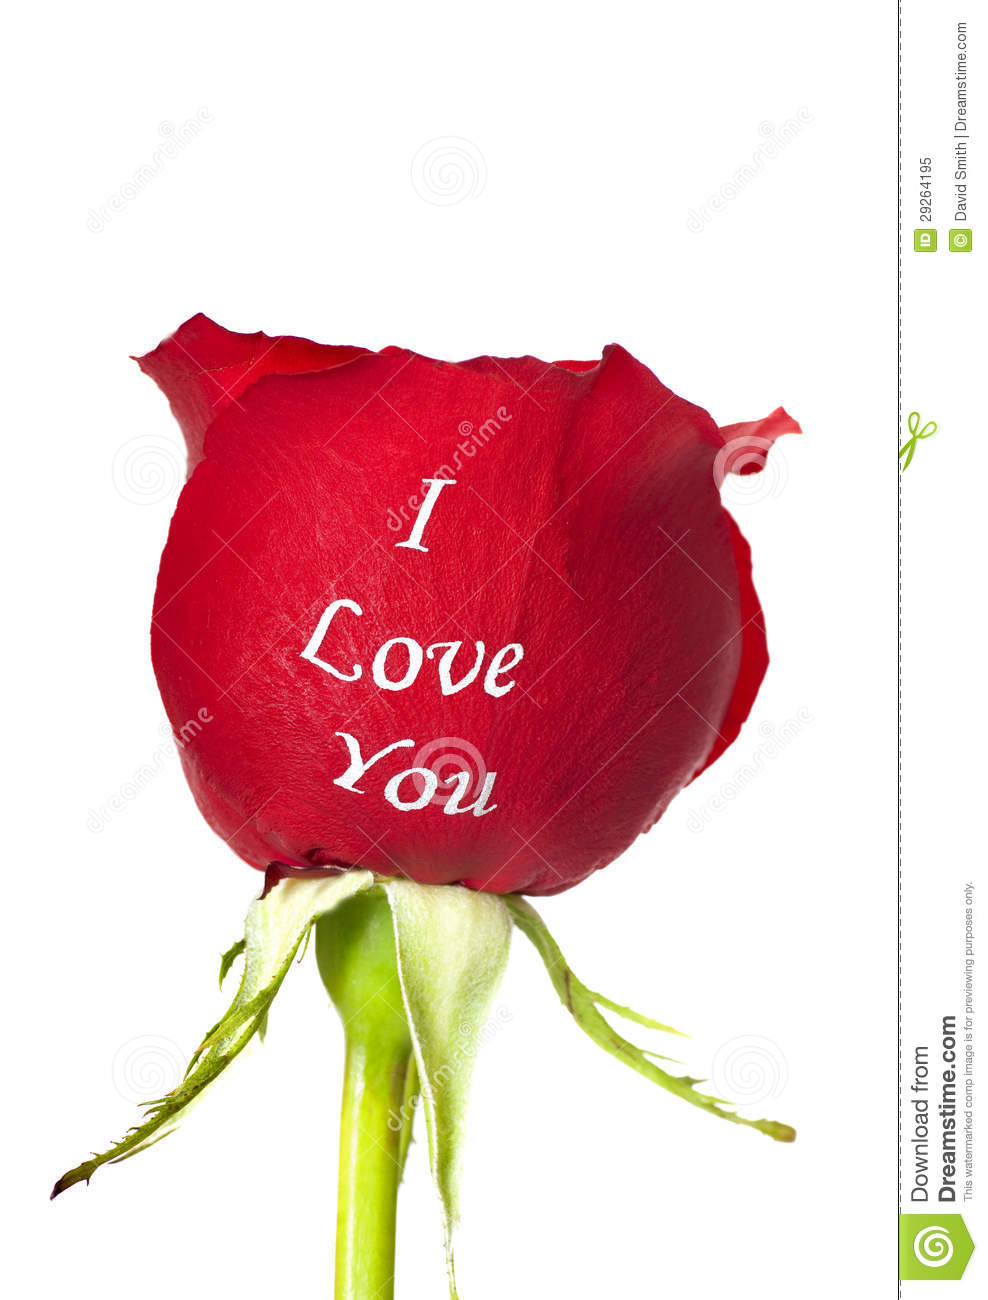 1 536 I Love You Rose Photos Free Royalty Free Stock Photos From Dreamstime